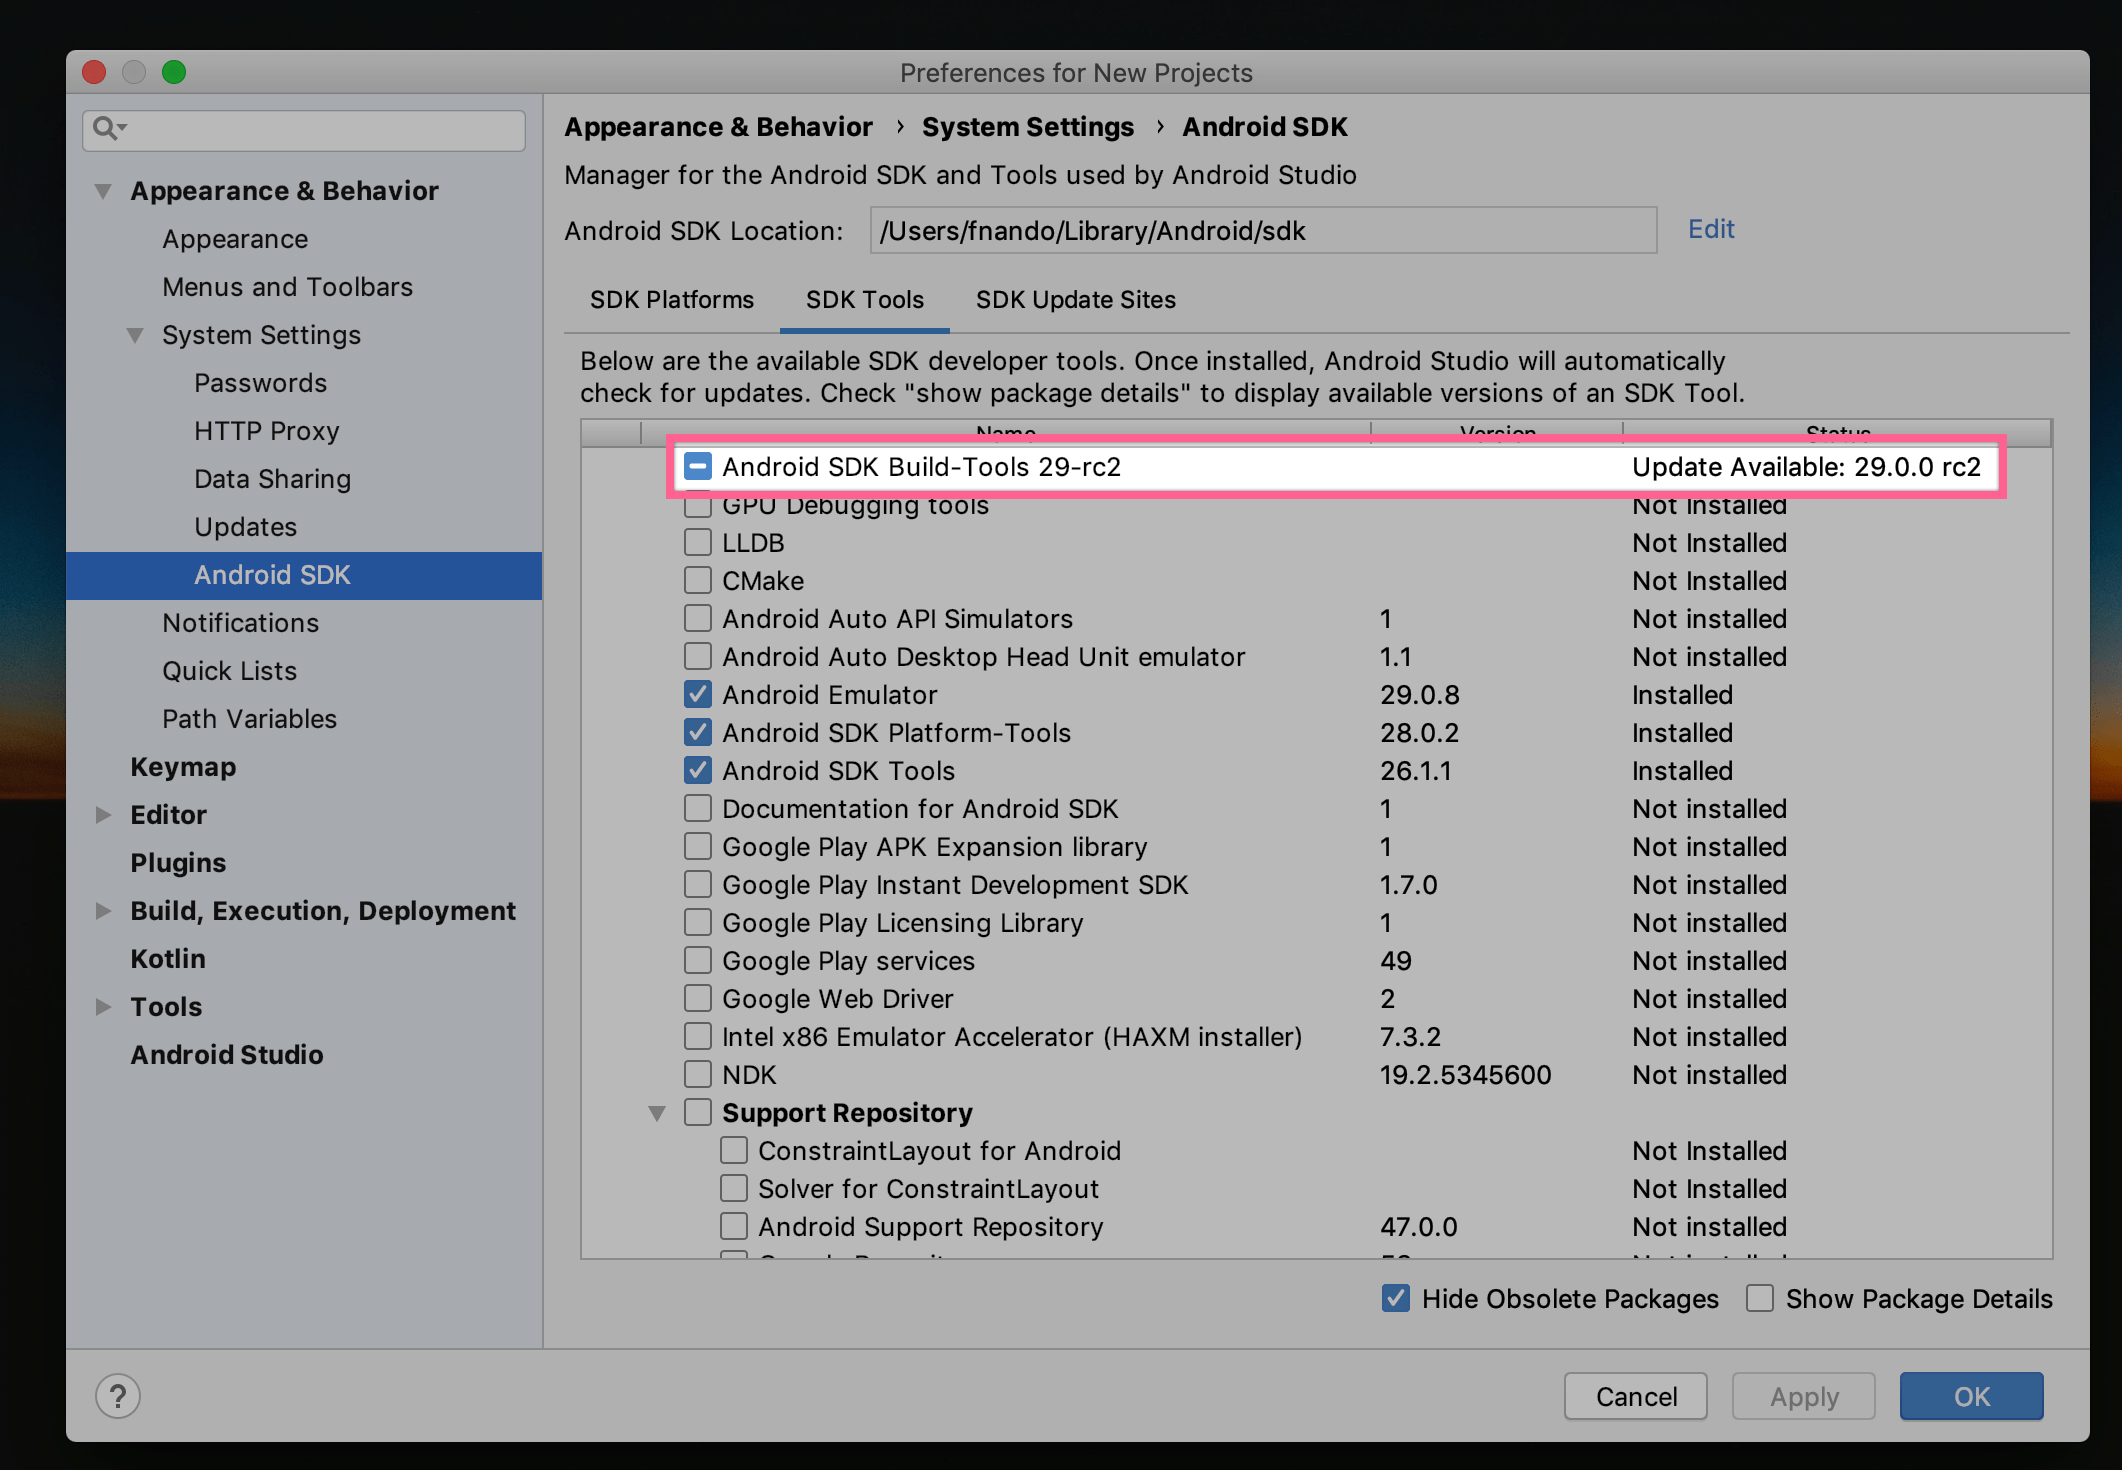 Android Studio: SDK Manager